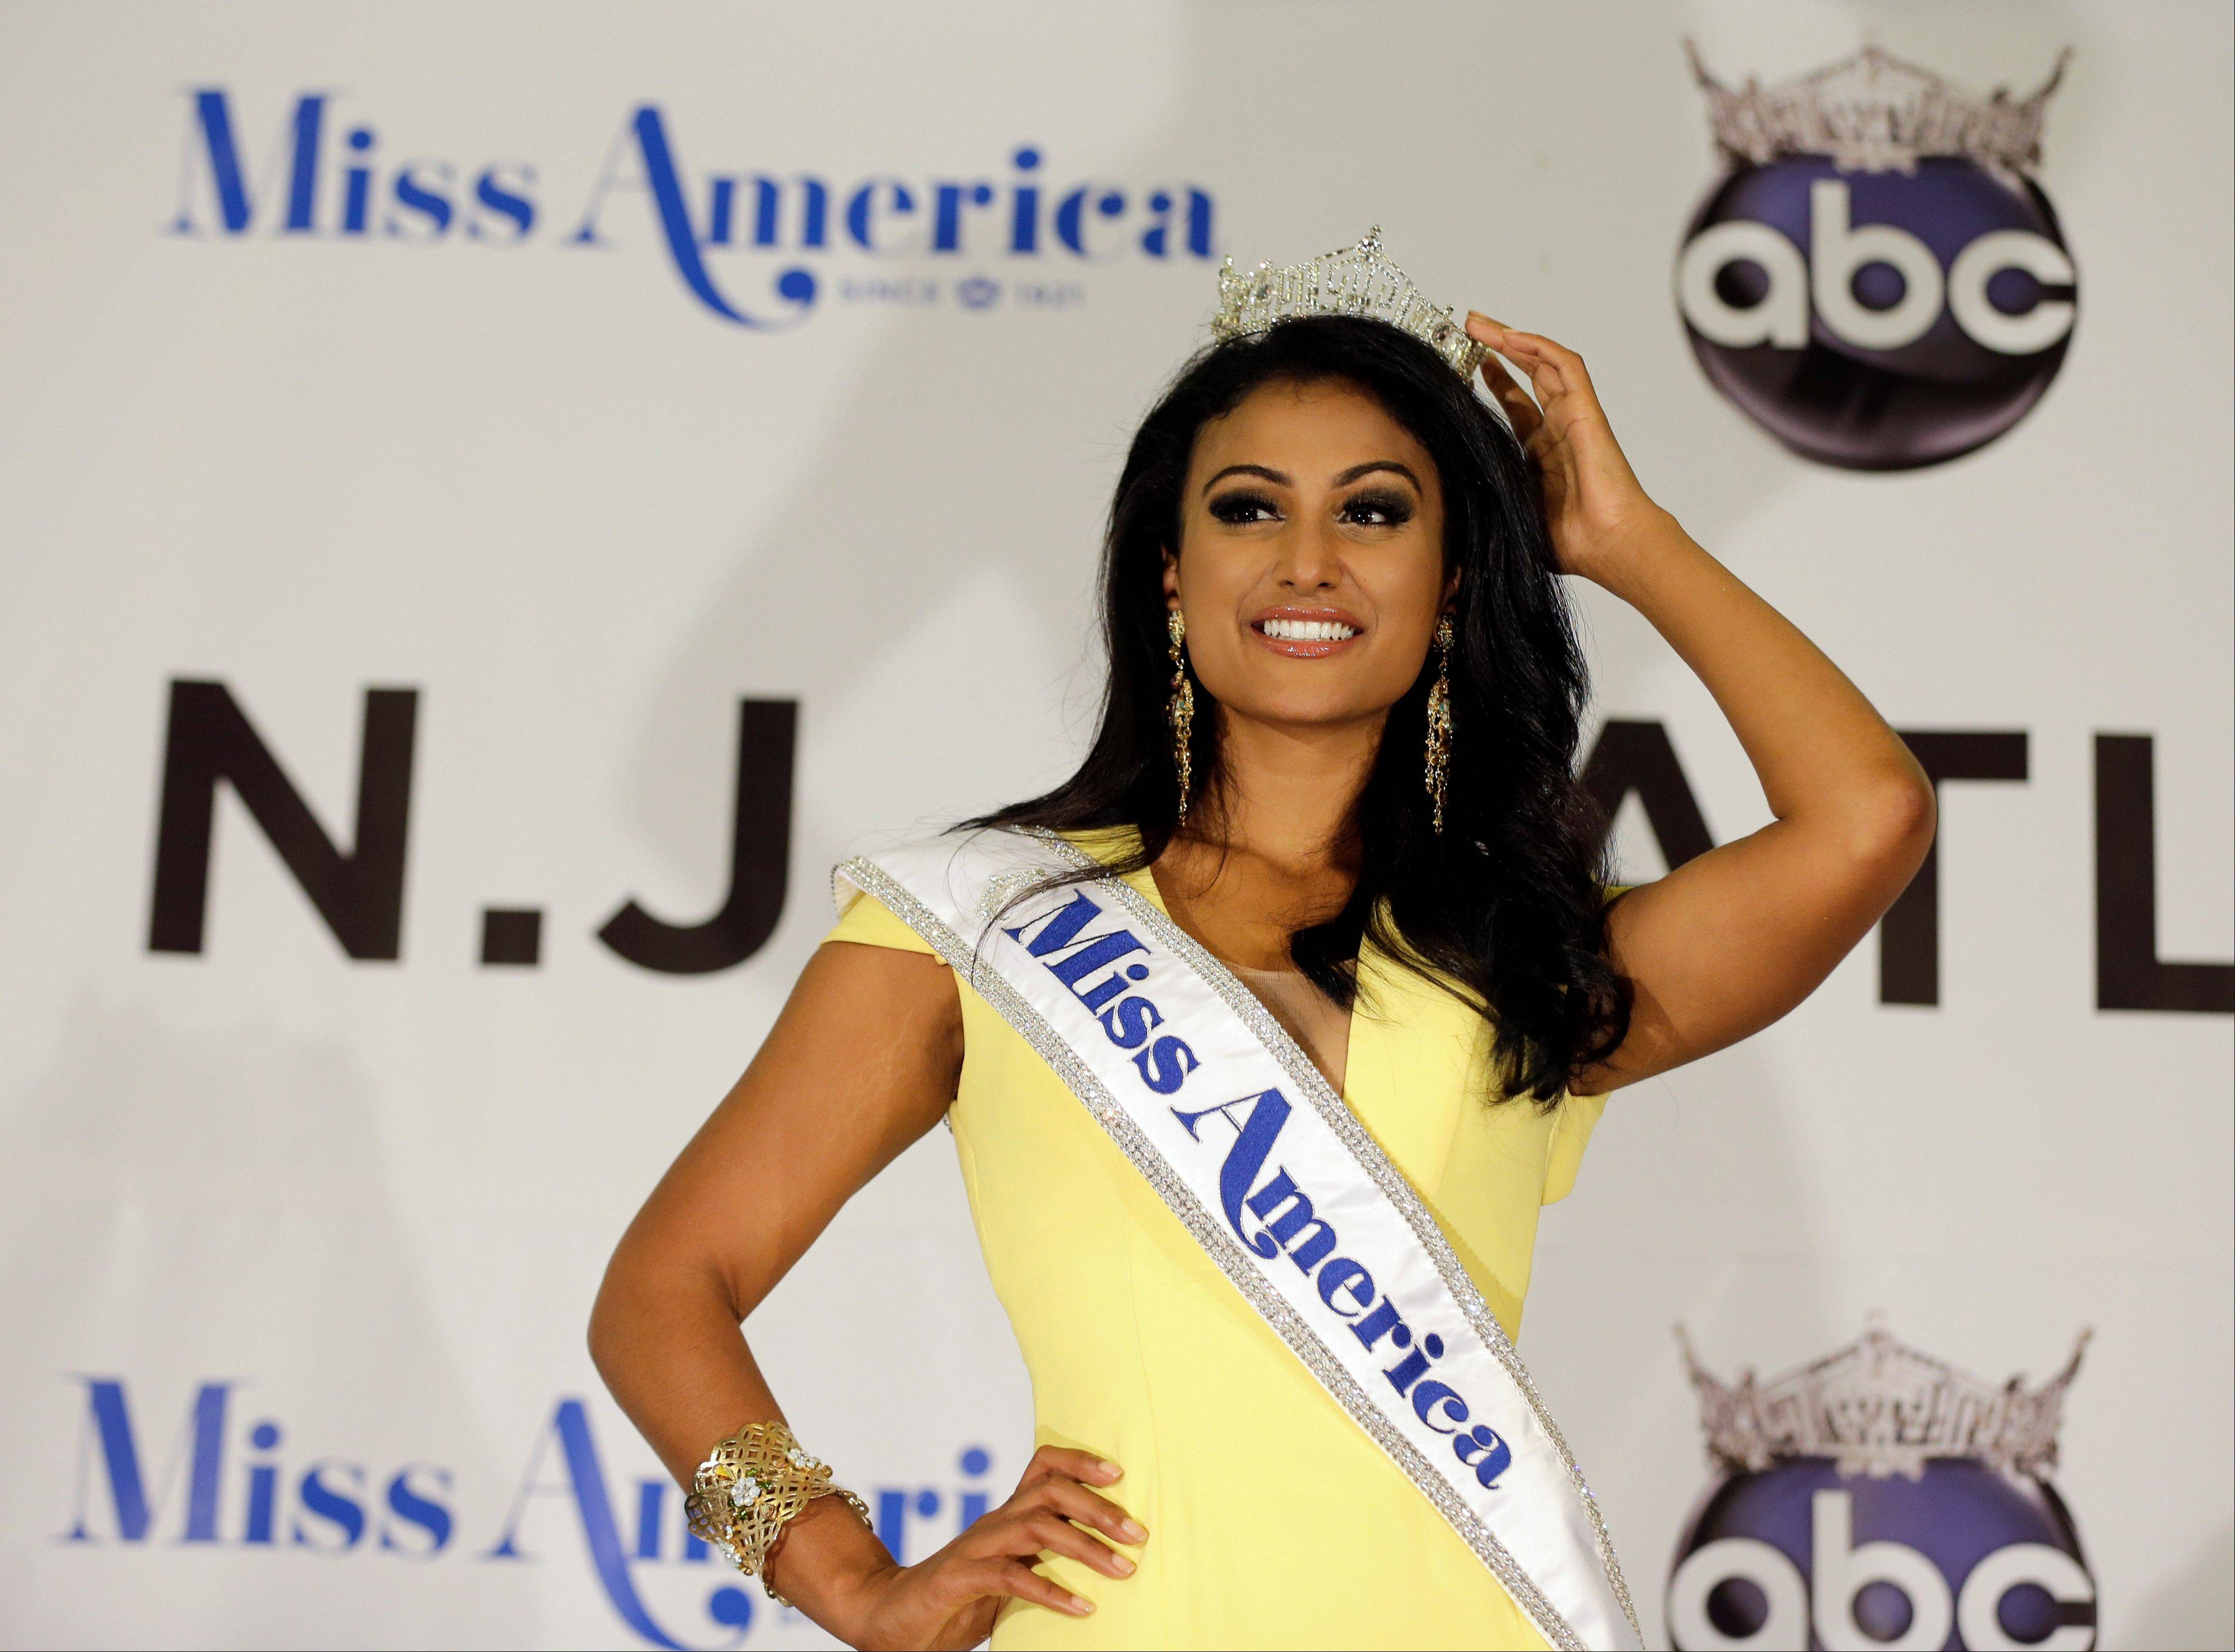 For some who observe the progress of people of color in the U.S., Nina Davaluri's victory in the Miss America pageant shows that Indian-Americans can become icons even in parts of mainstream American culture that once seemed closed.